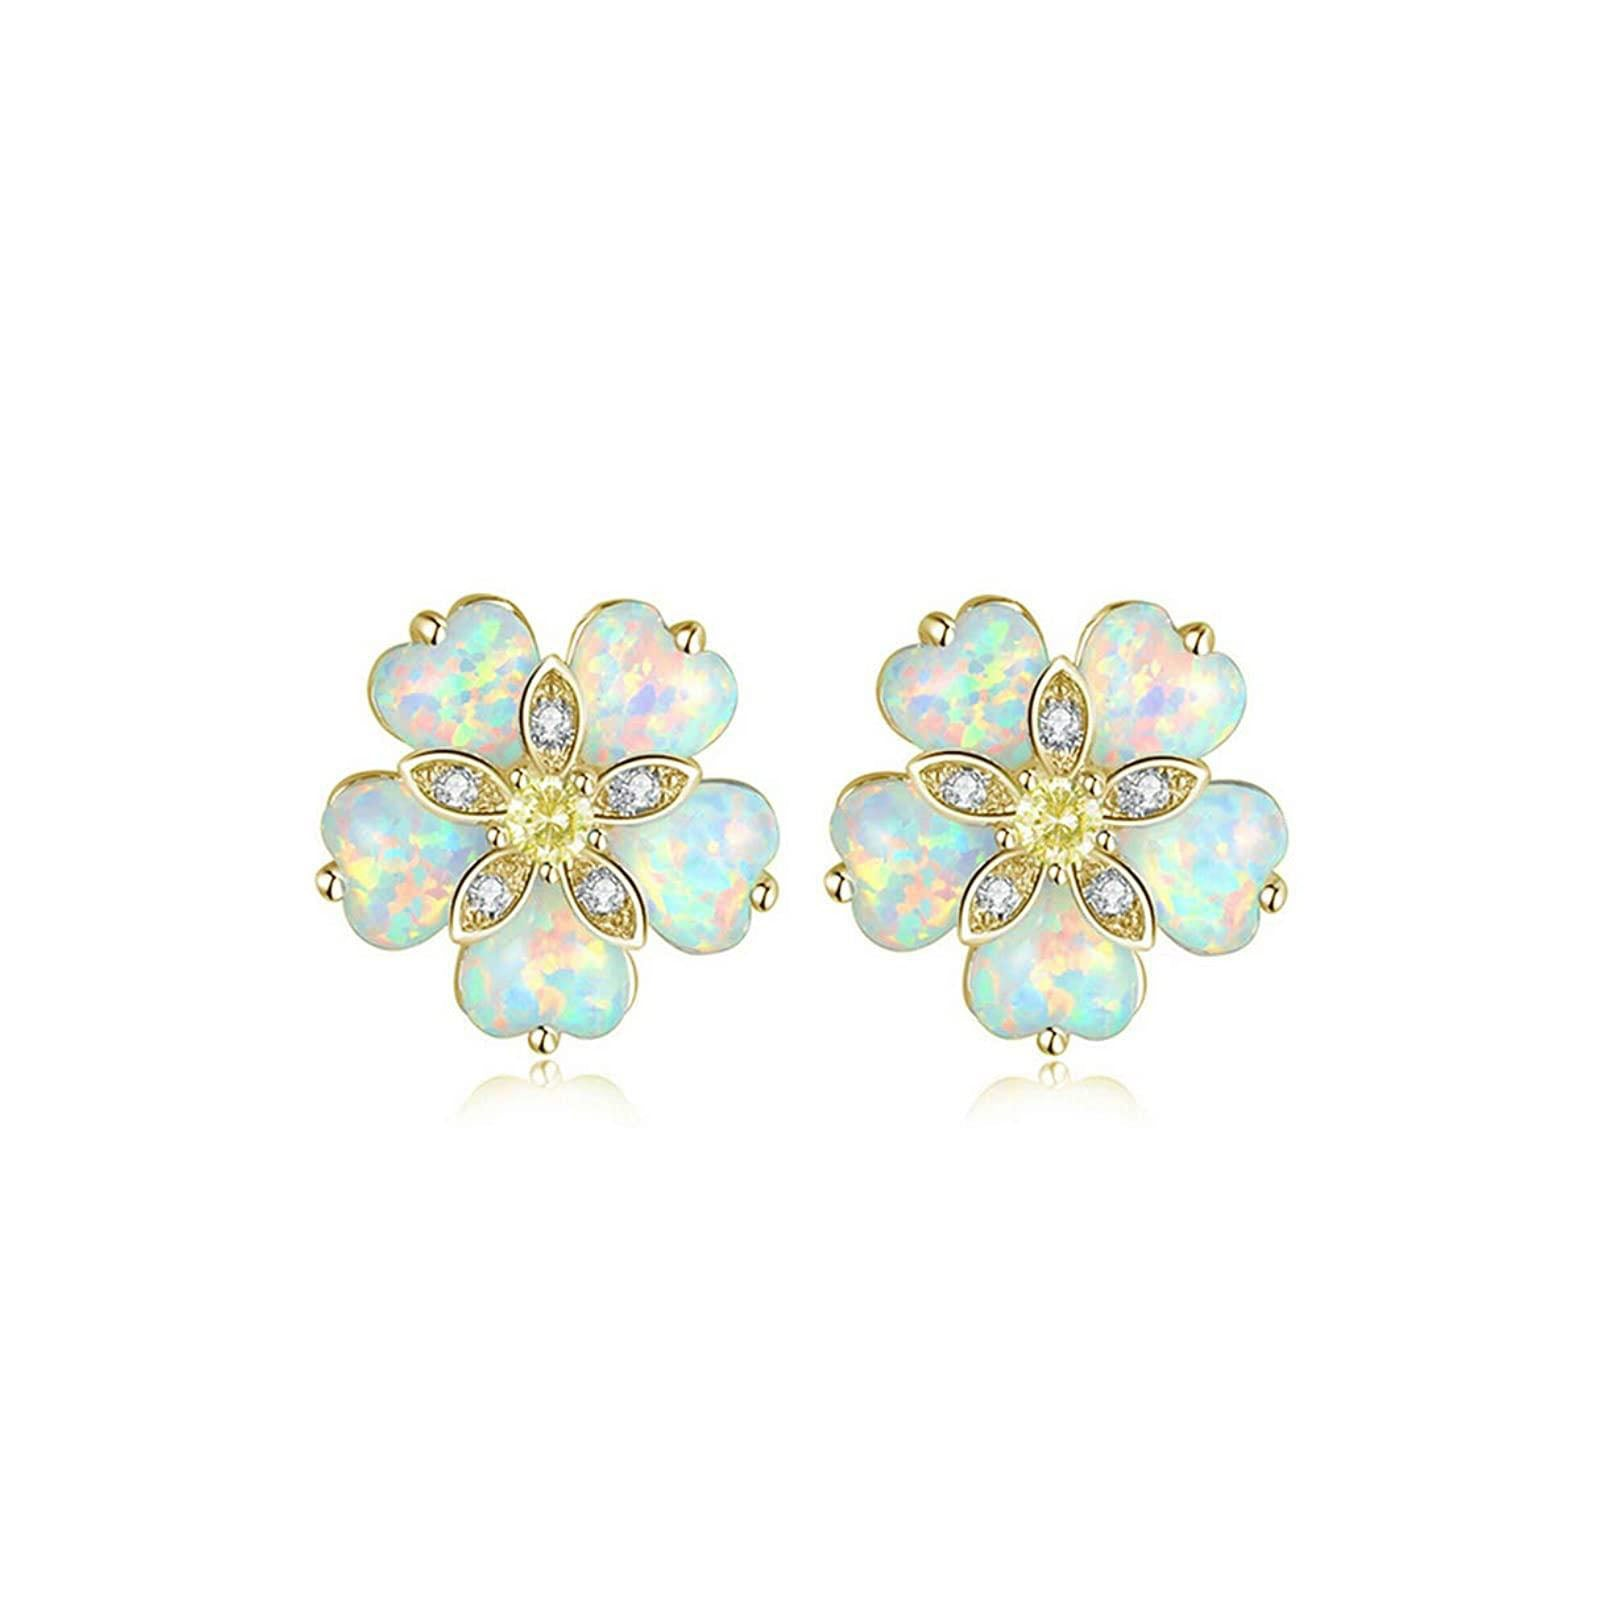 Flower Opal Earrings Stud,Gold Plated or Rhodium Plated Hypoallergenic Earrings for Women Opal Jewelry Gemstone Stud Earrings 12mm-15mm